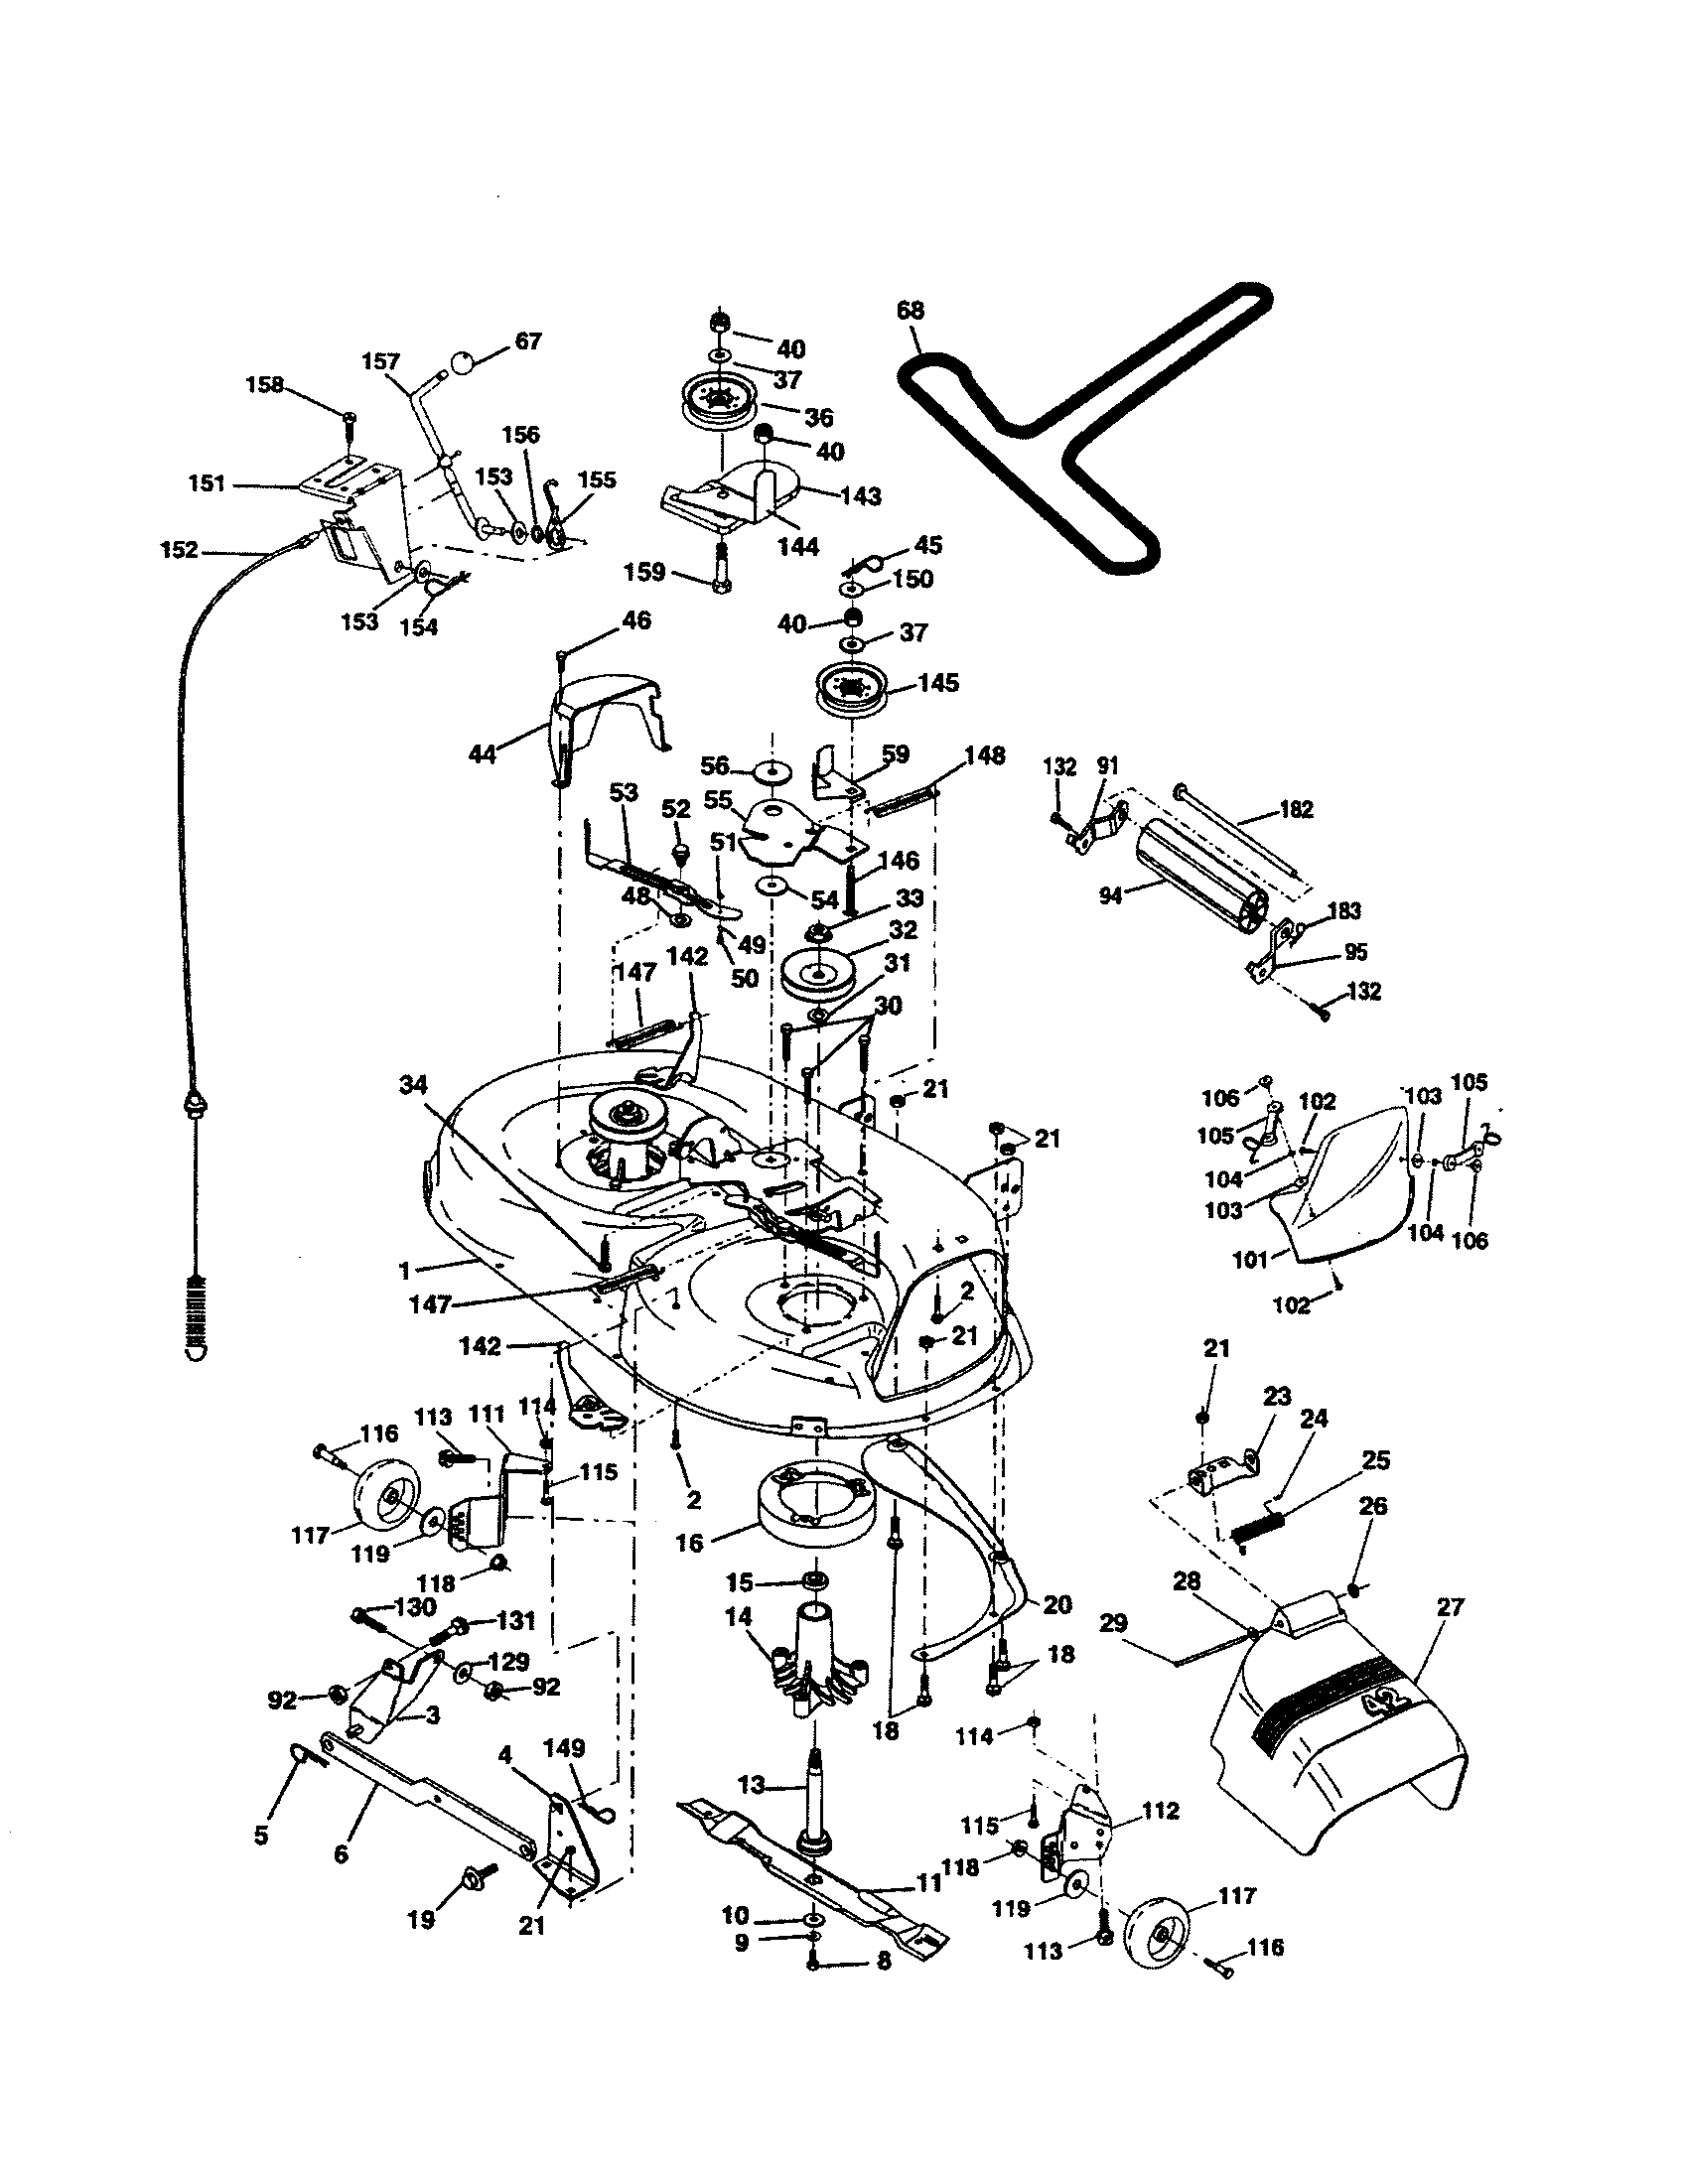 hight resolution of poulan riding mower schematics wiring diagrams value poulan riding mower manual looking for poulan model ppr20h42stc